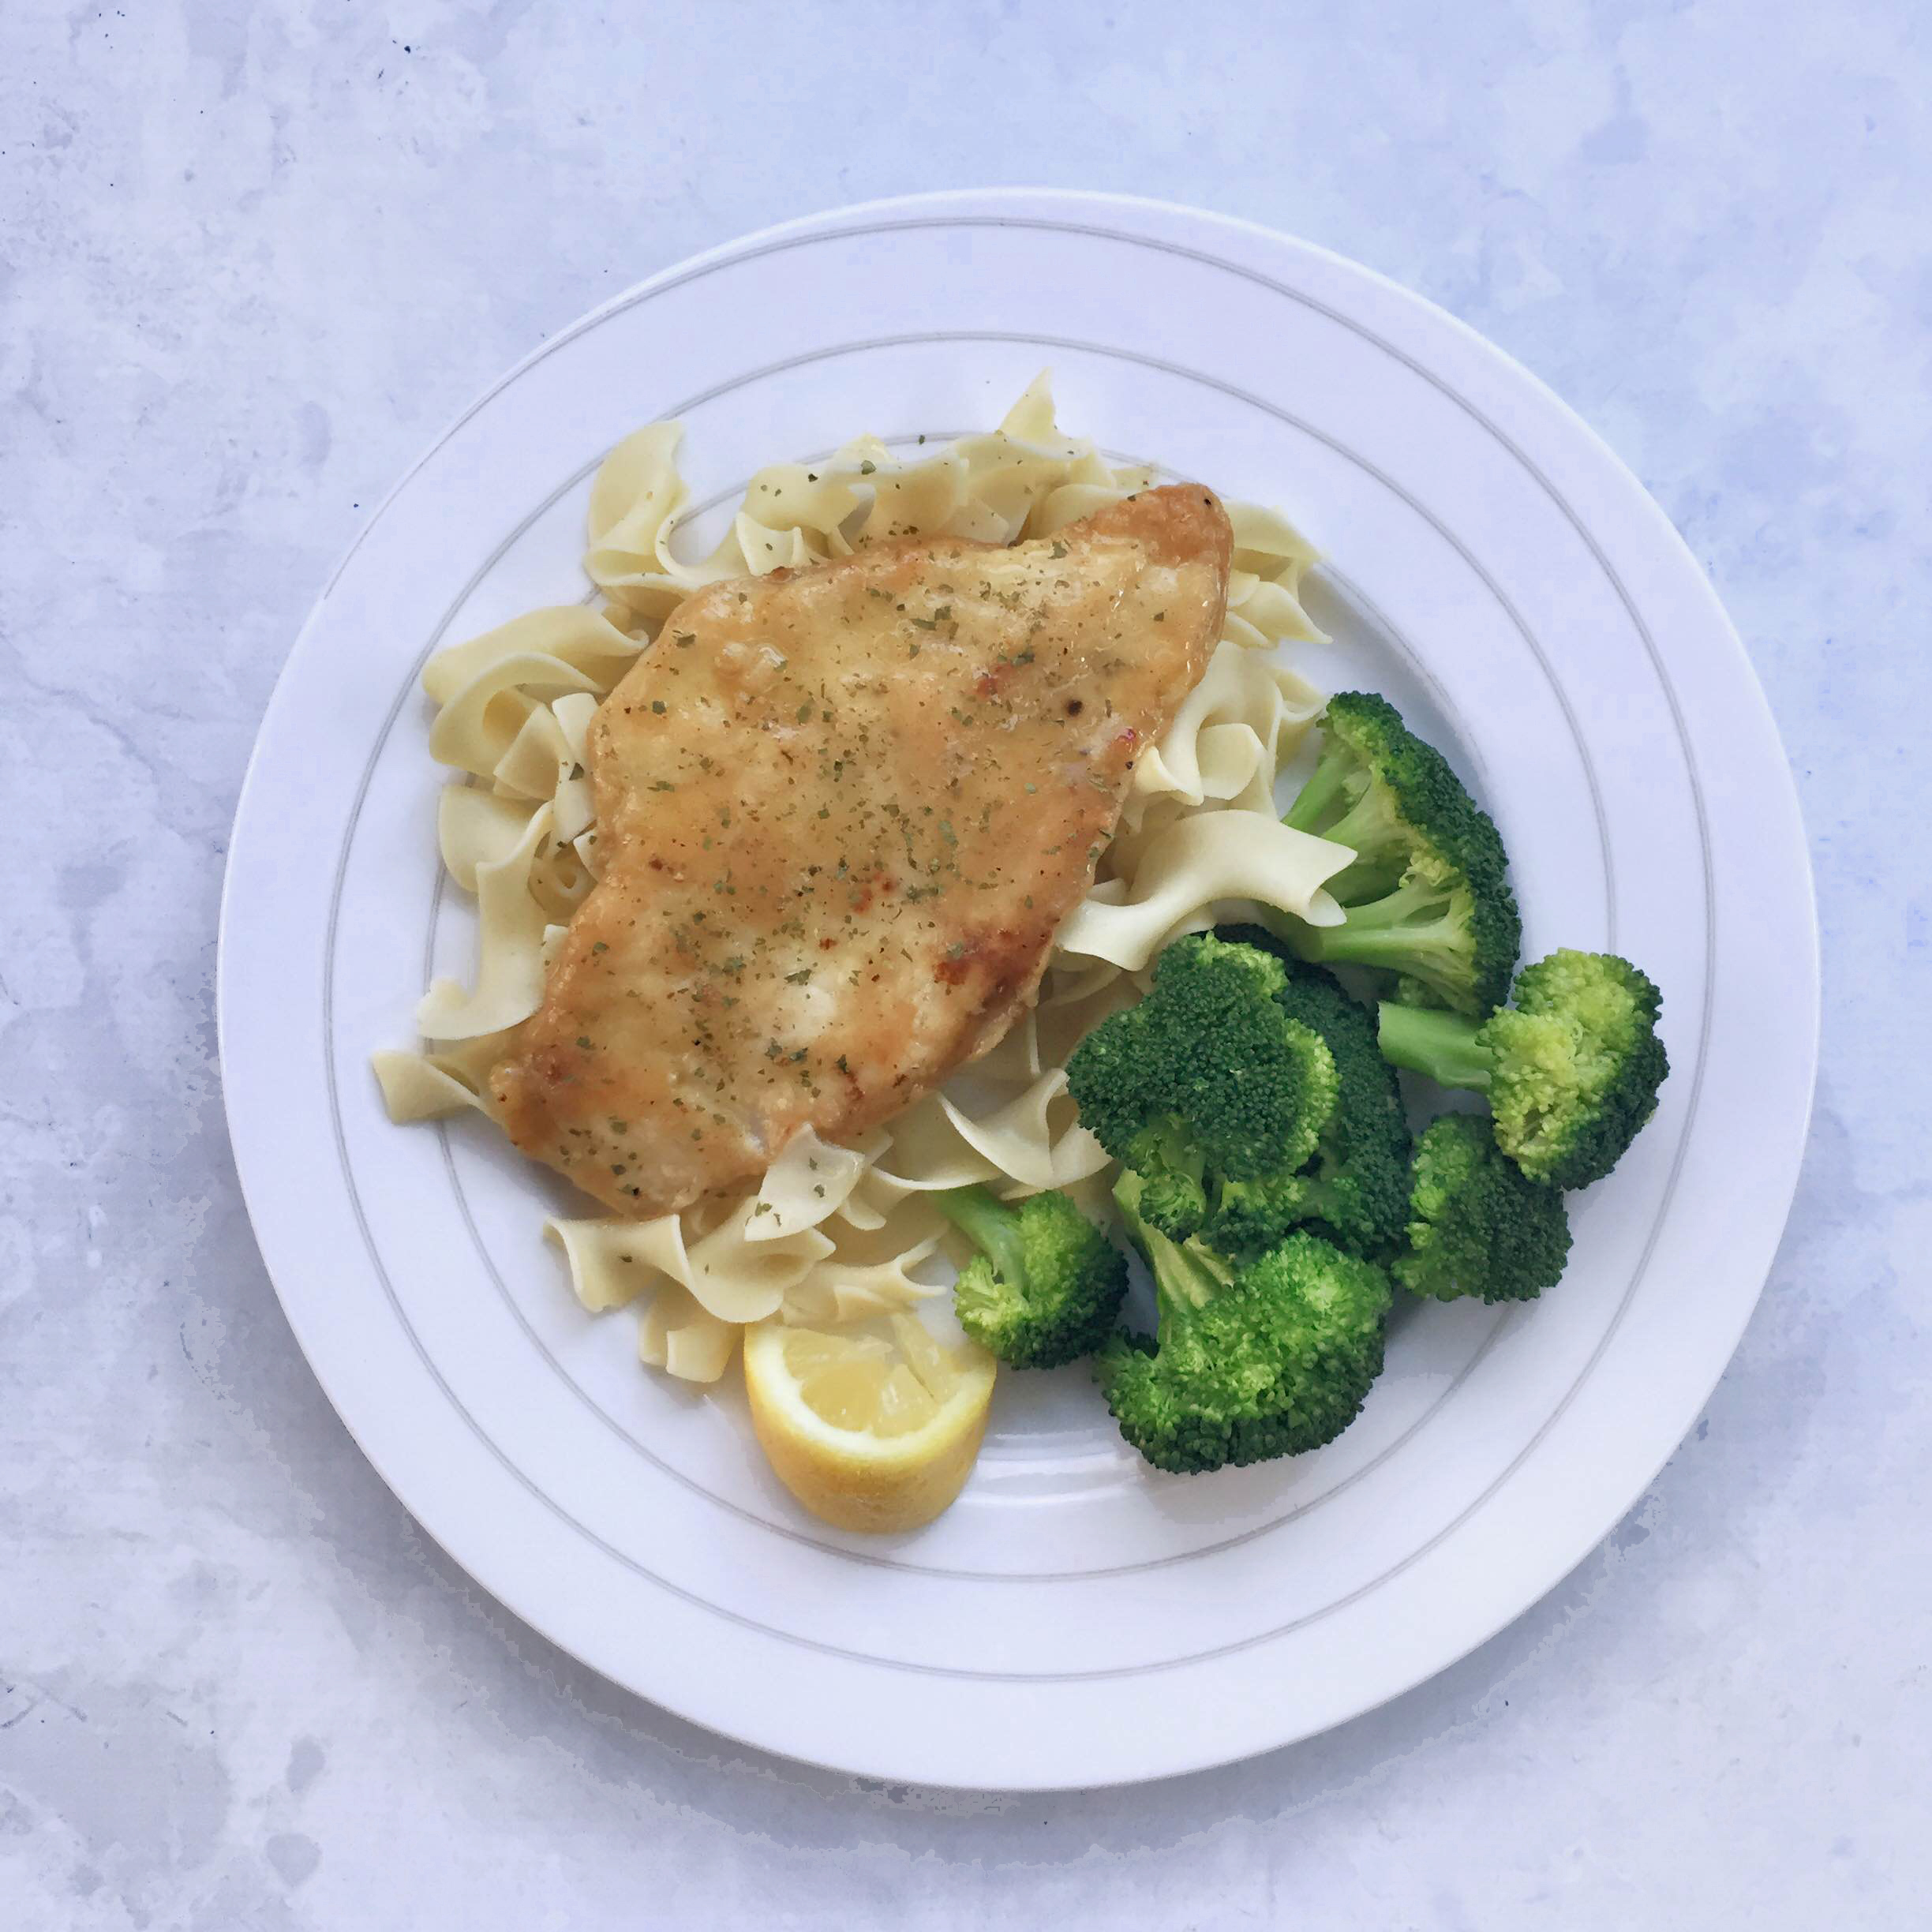 Cheap and easy lemon chicken dinner | chicken picatta | lemon chicken | dairy free gluten free chicken recipe | GinaKirk.com